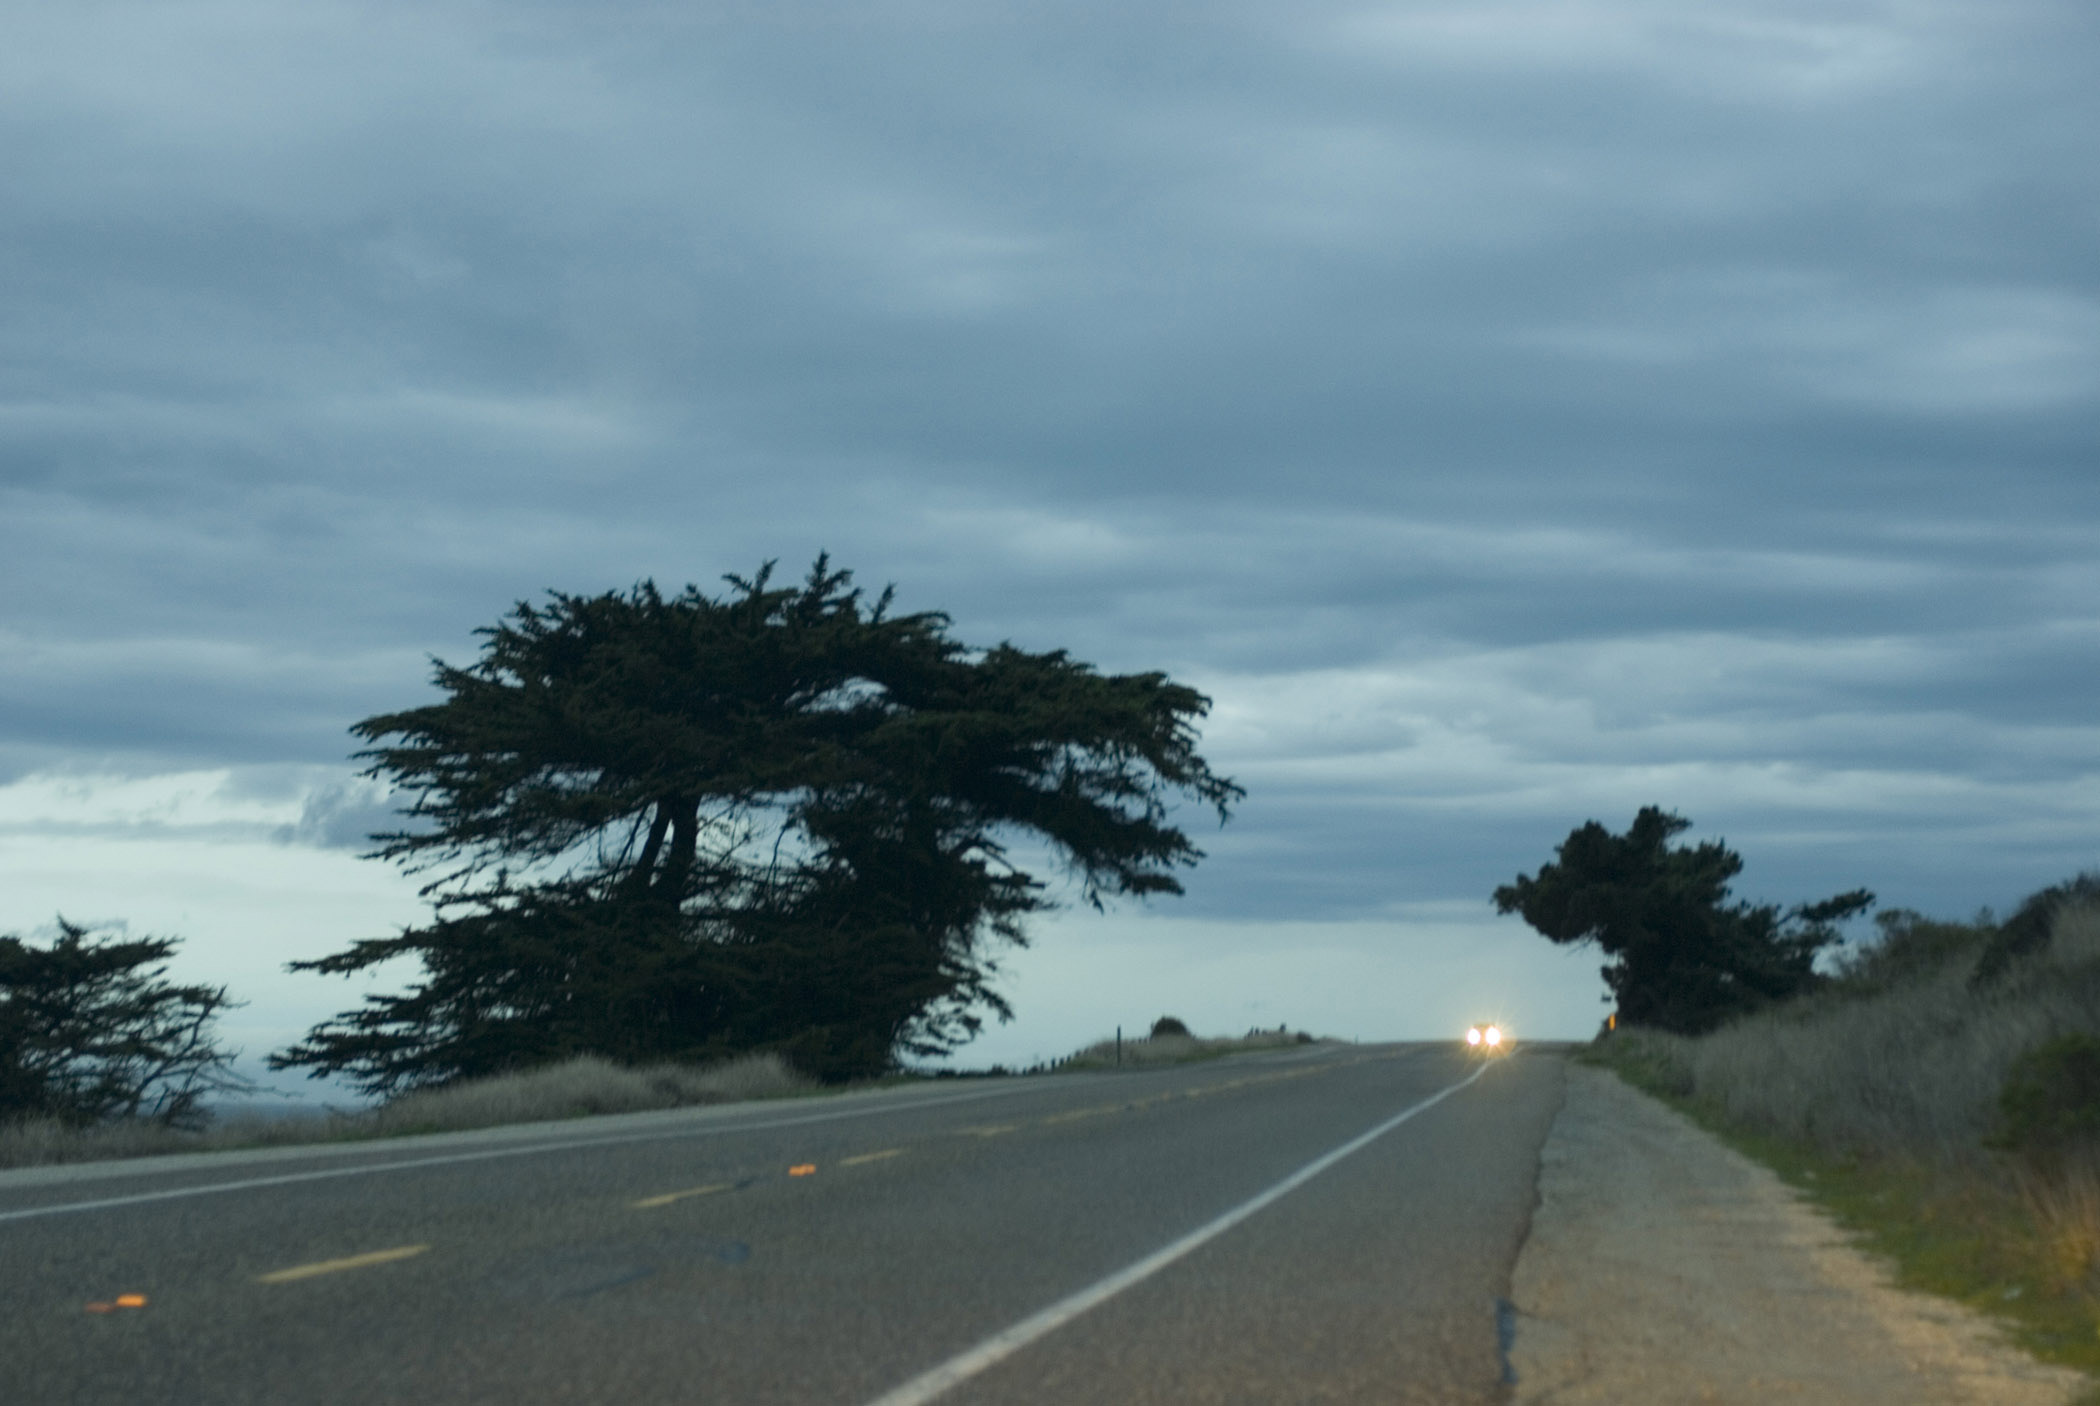 Low angle view with an approaching car with headlights illuminated on Highway 1 on the Big Sur Coast, California